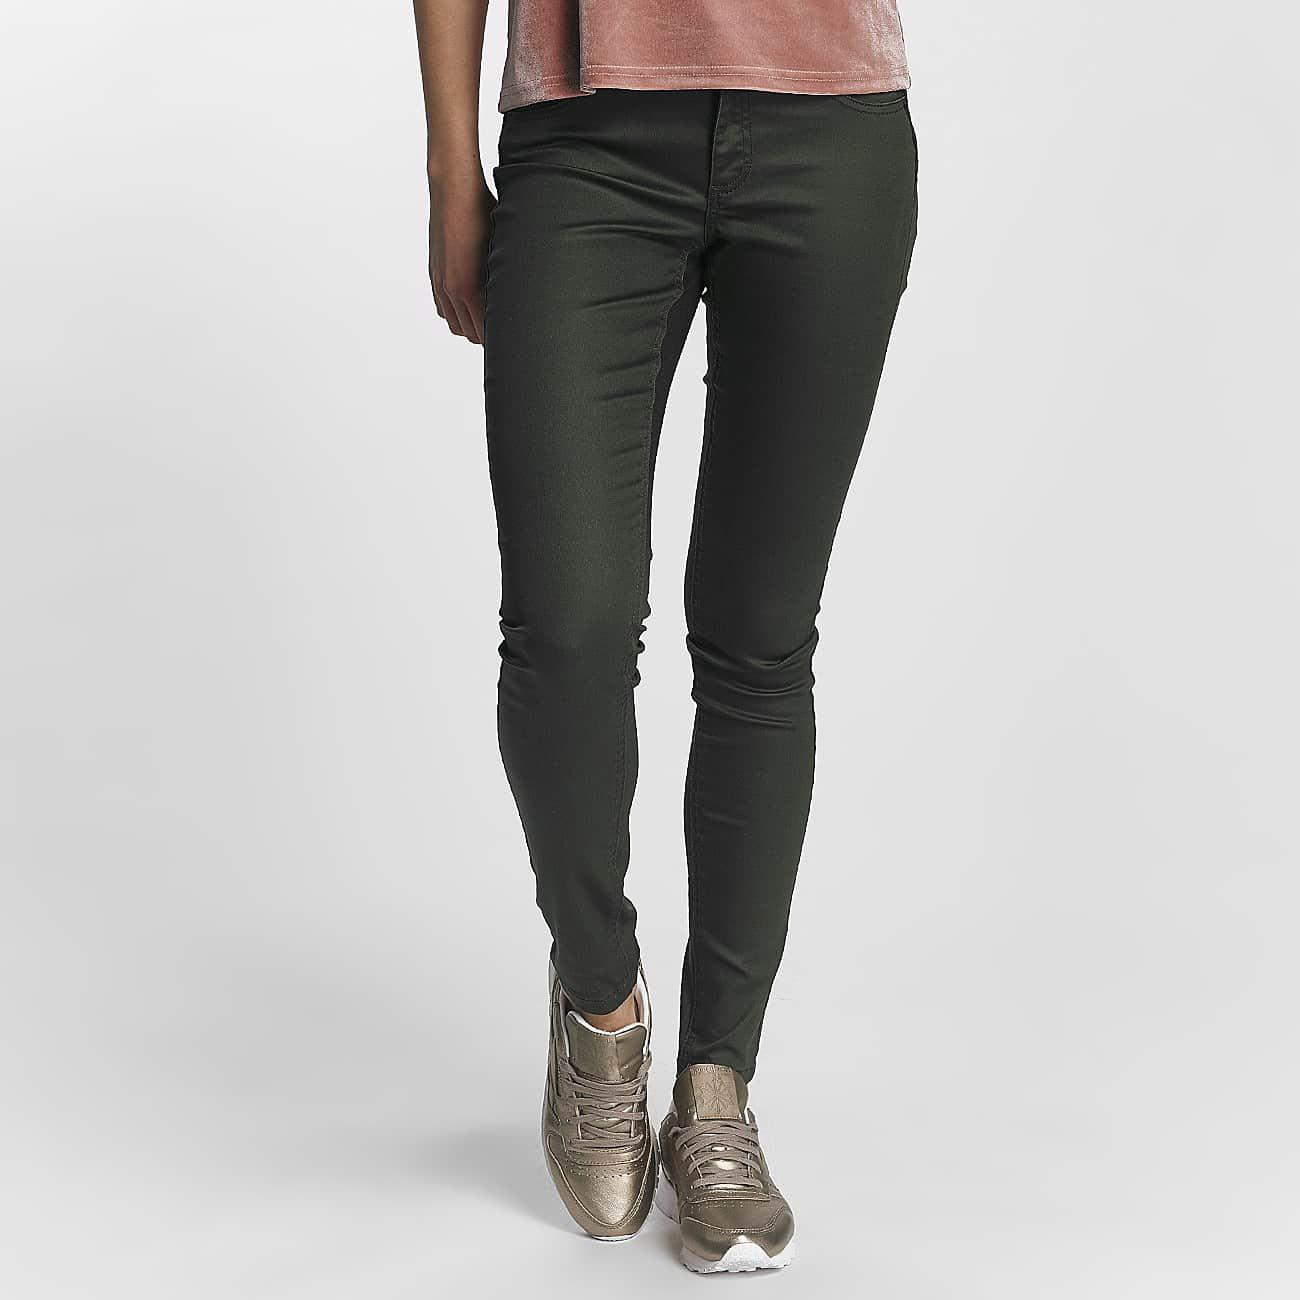 ONLY. Women's Green Wo Chino Onllucia